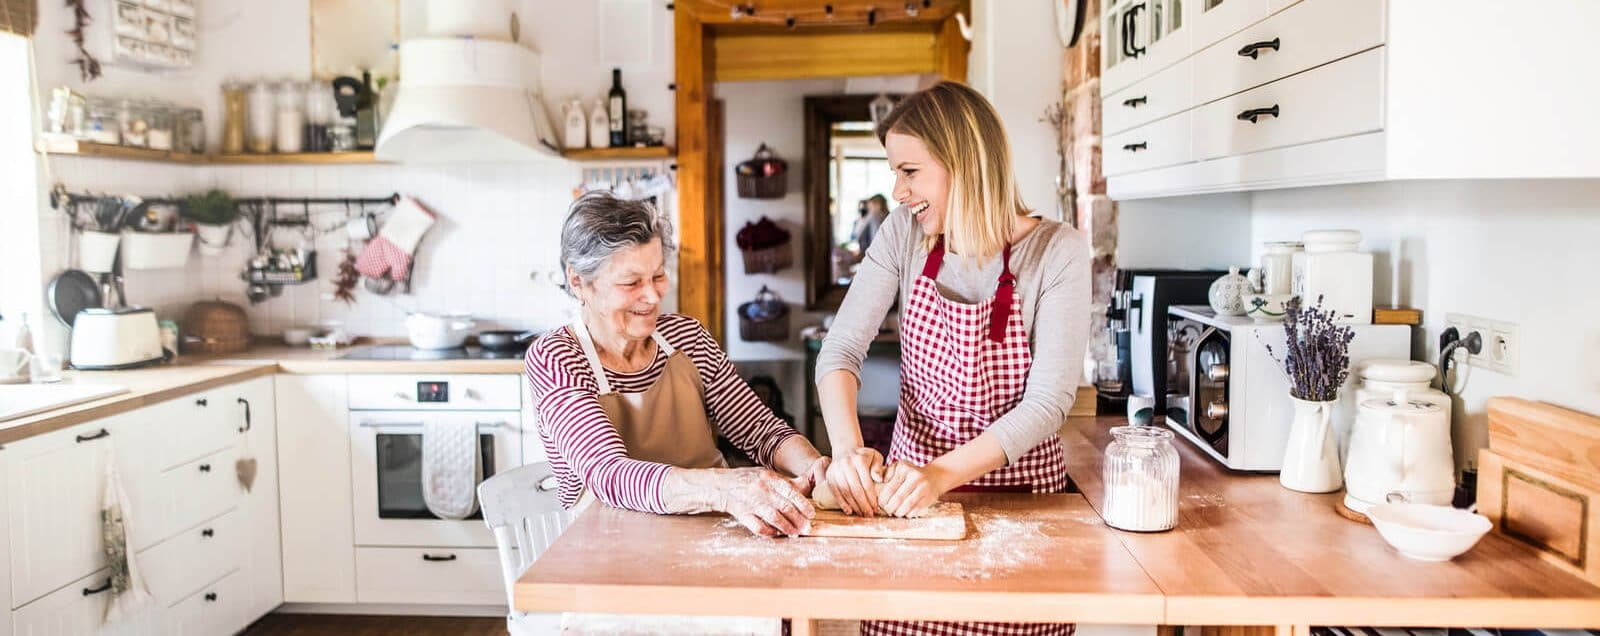 Home Carer with Home Care Client